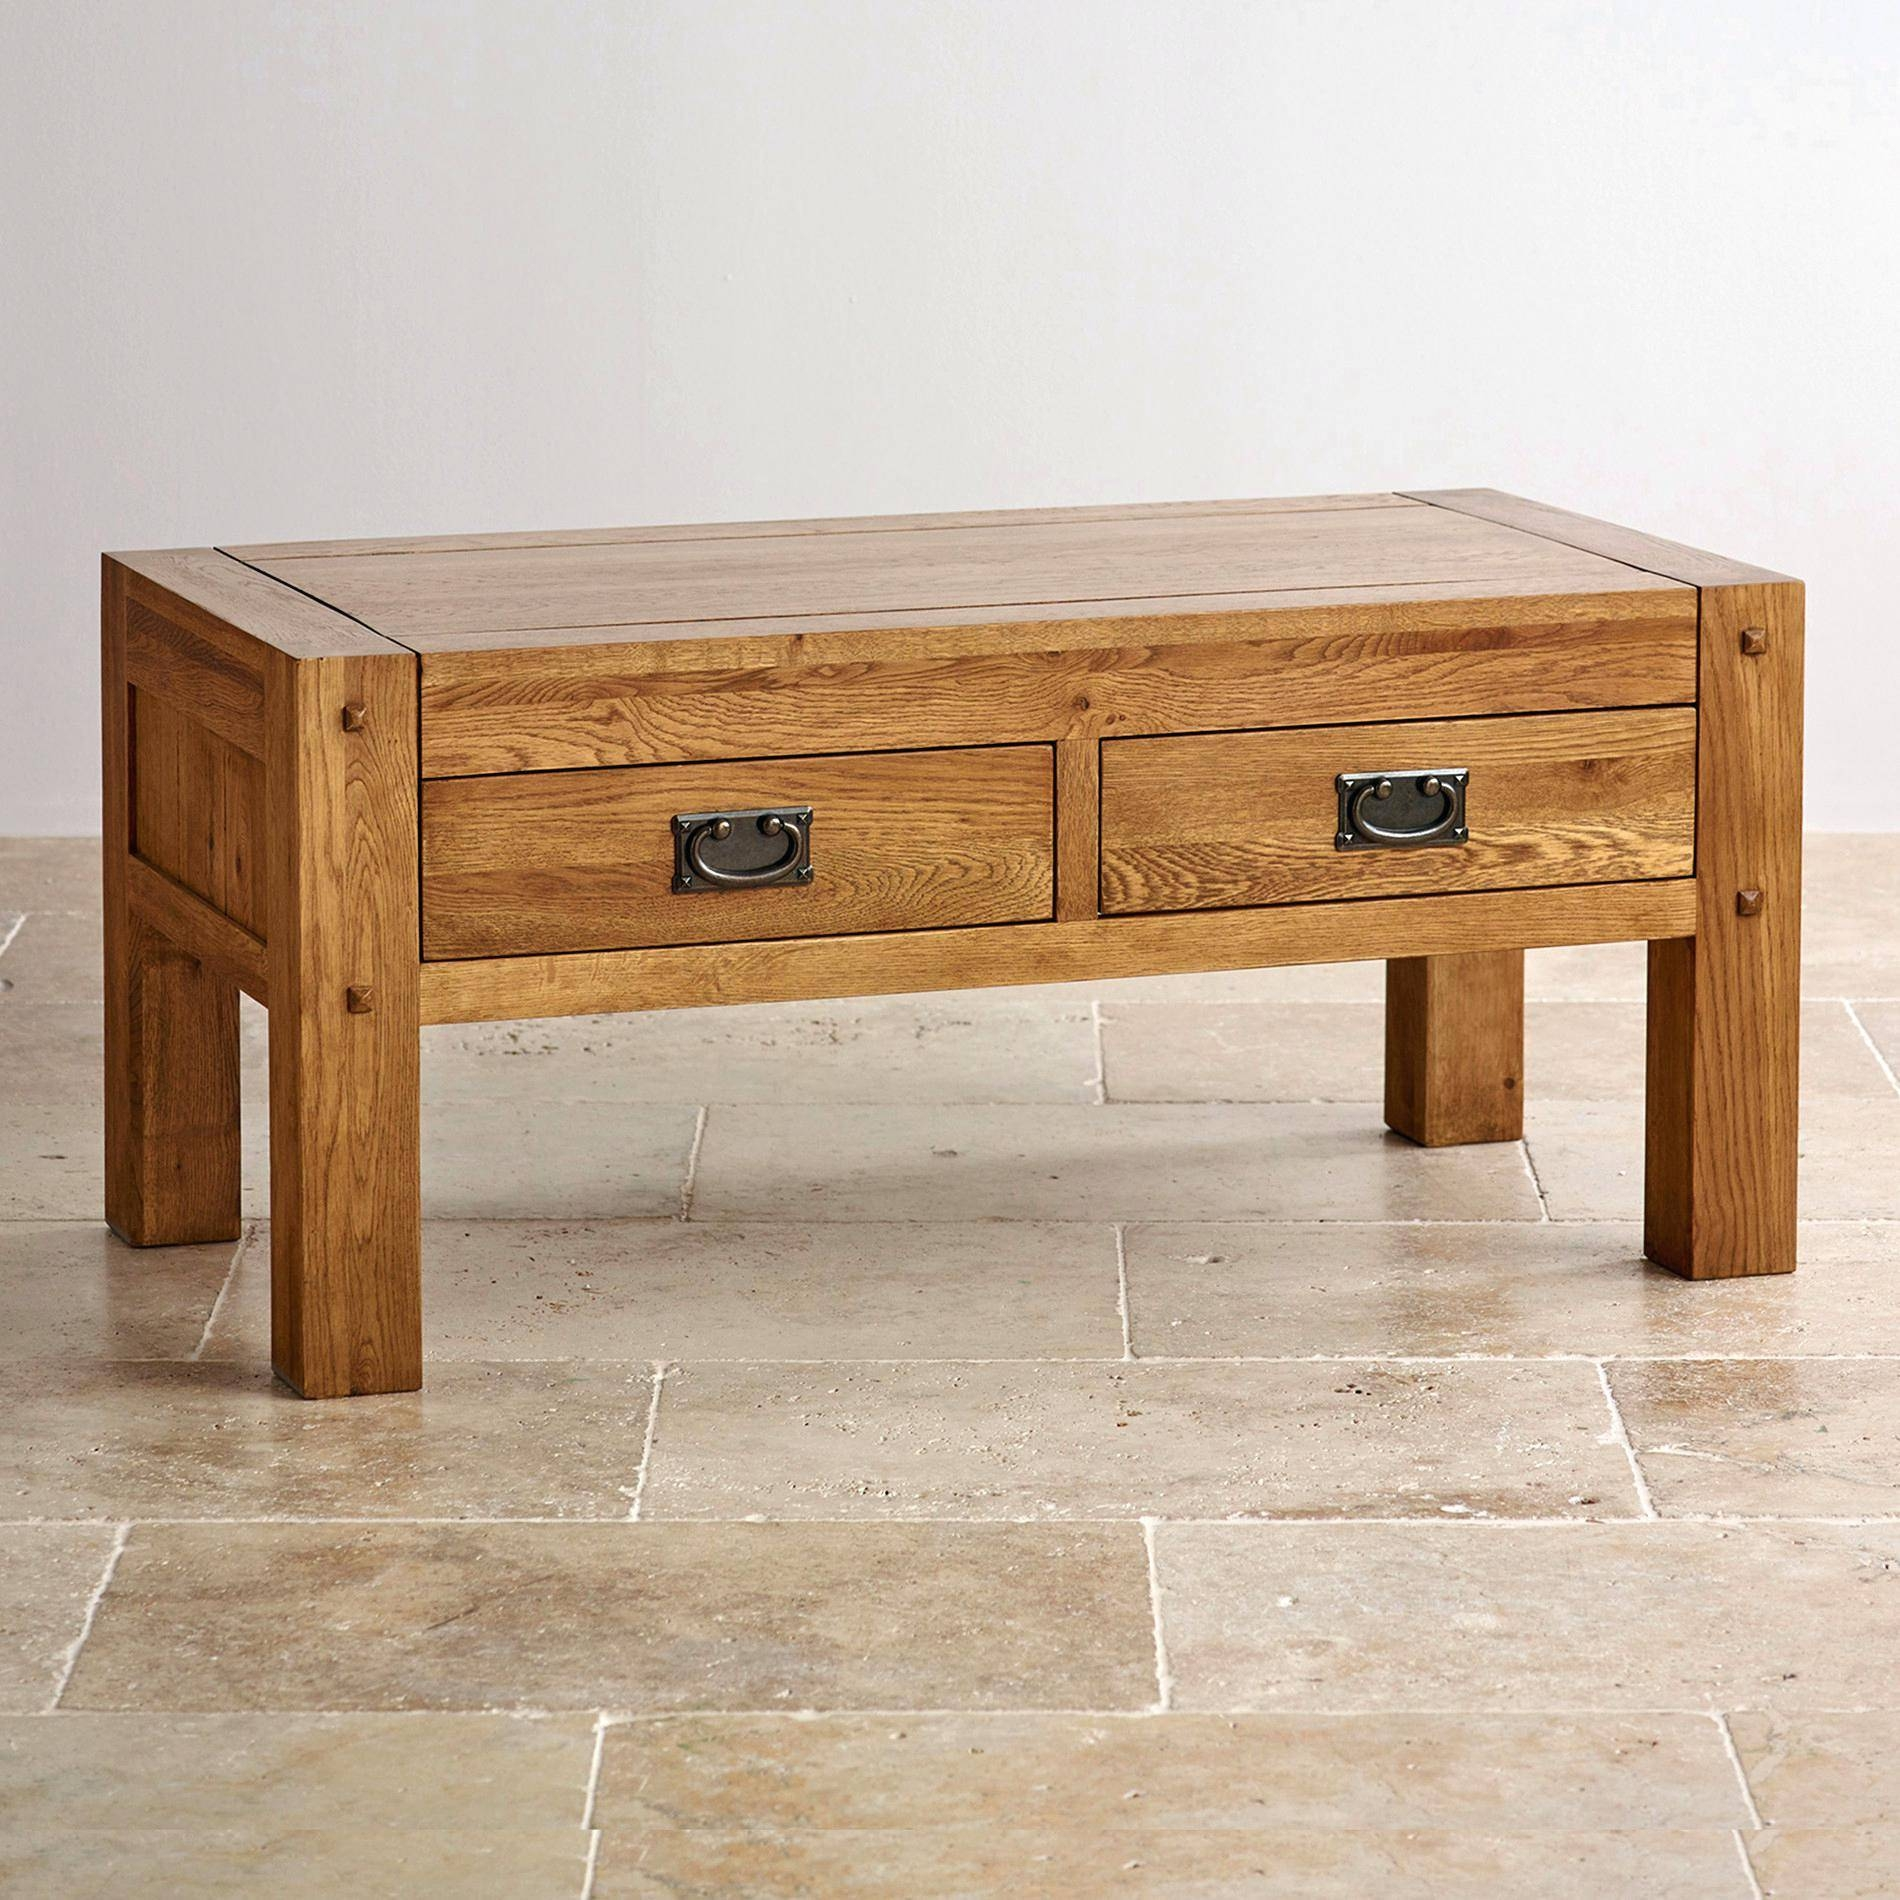 Orly Oak Square Coffee Table With Drawers | Coffee Tables Decoration in Square Oak Coffee Tables (Image 19 of 30)